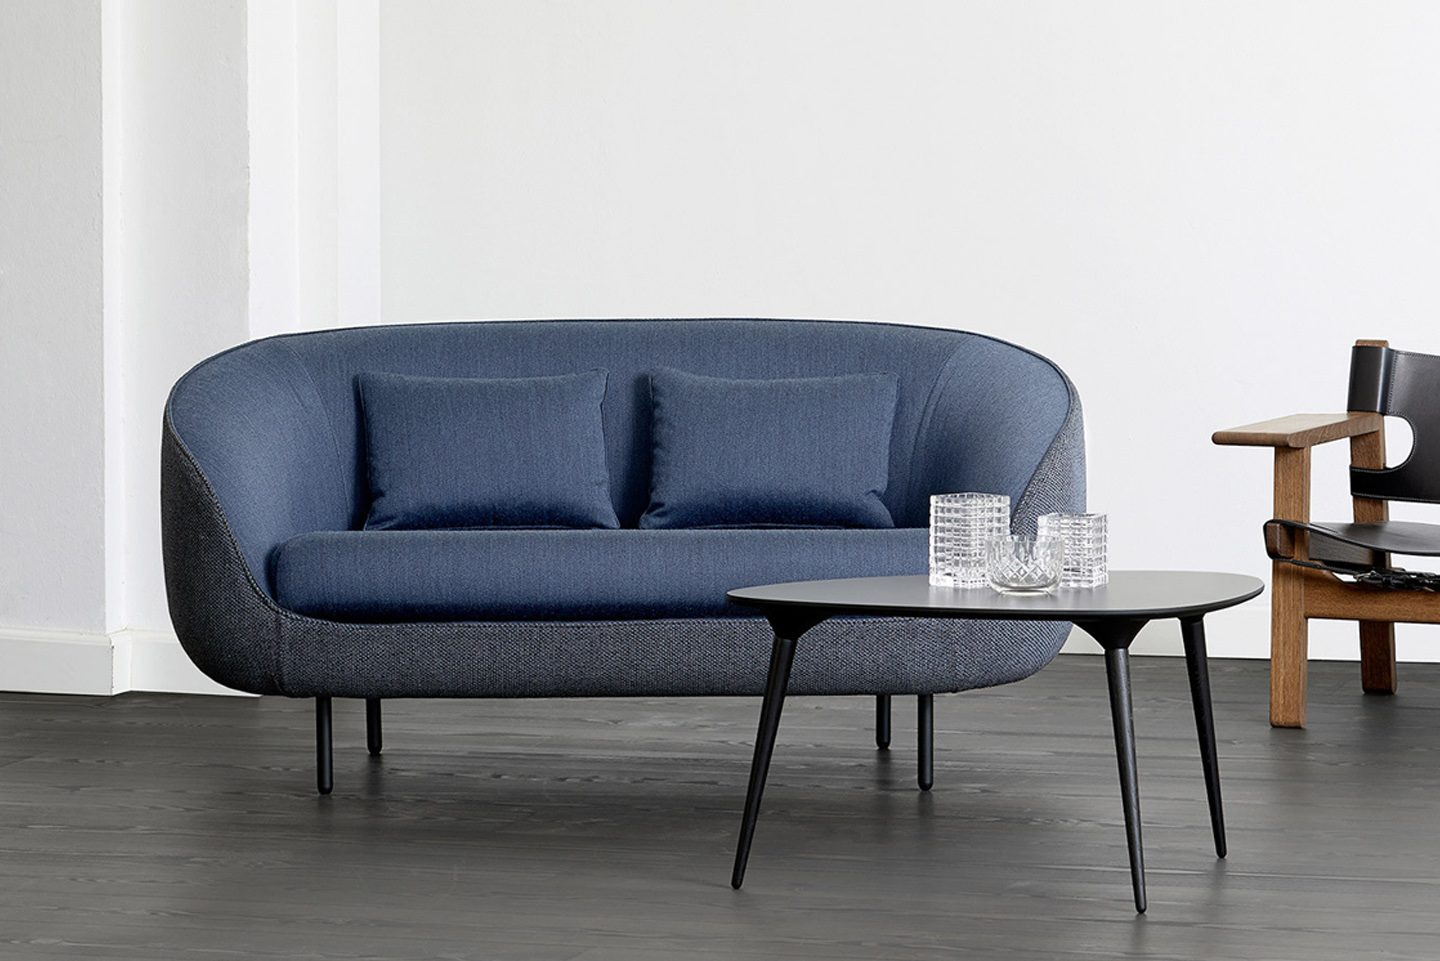 HAIKU TWO SEATER LOW SOFA BY FREDERICIA